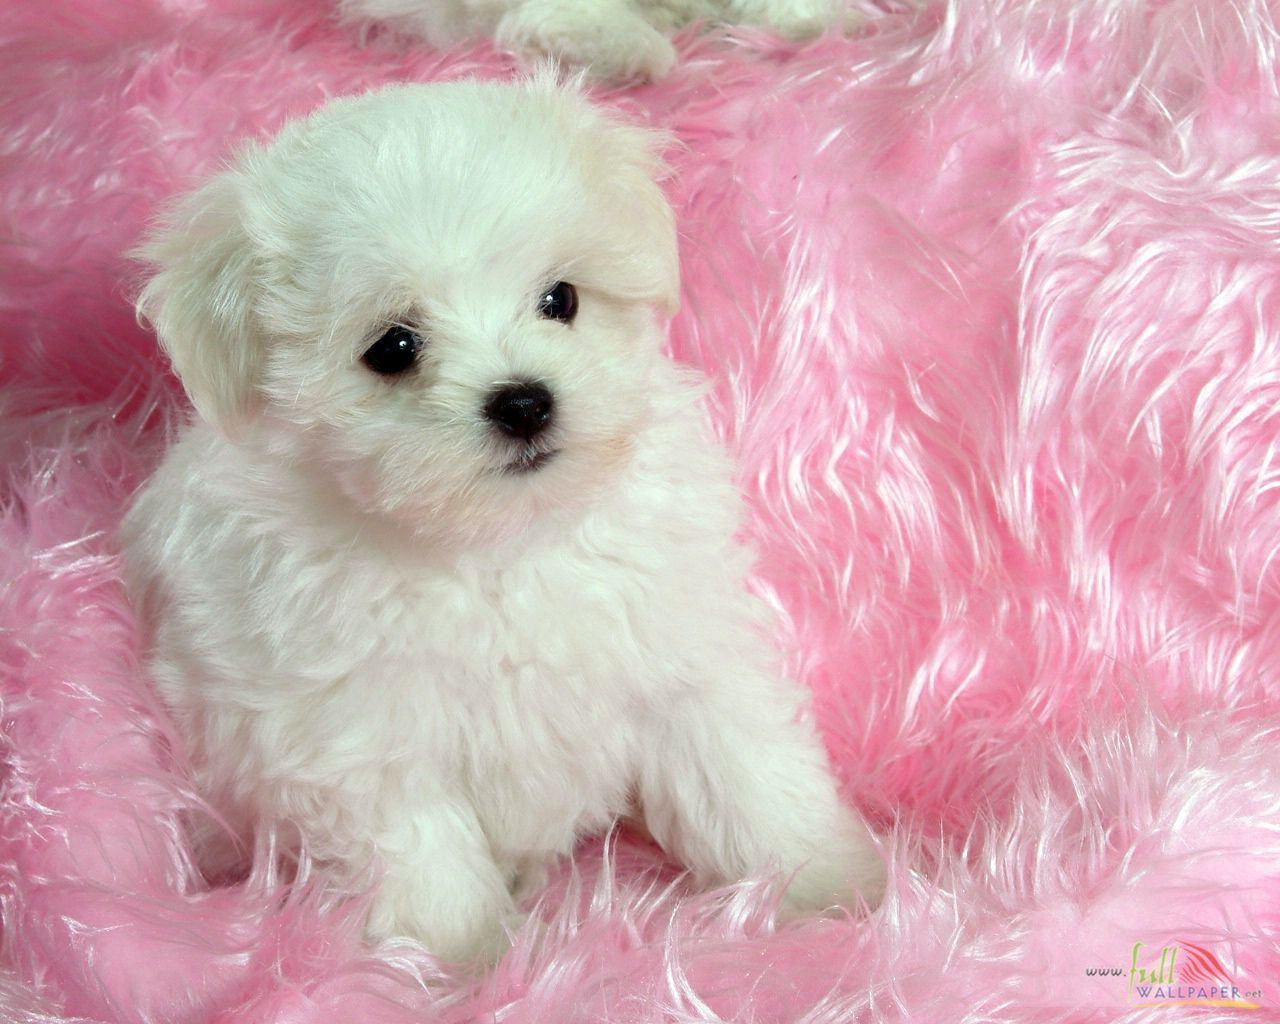 images of baby dogs - photo #4